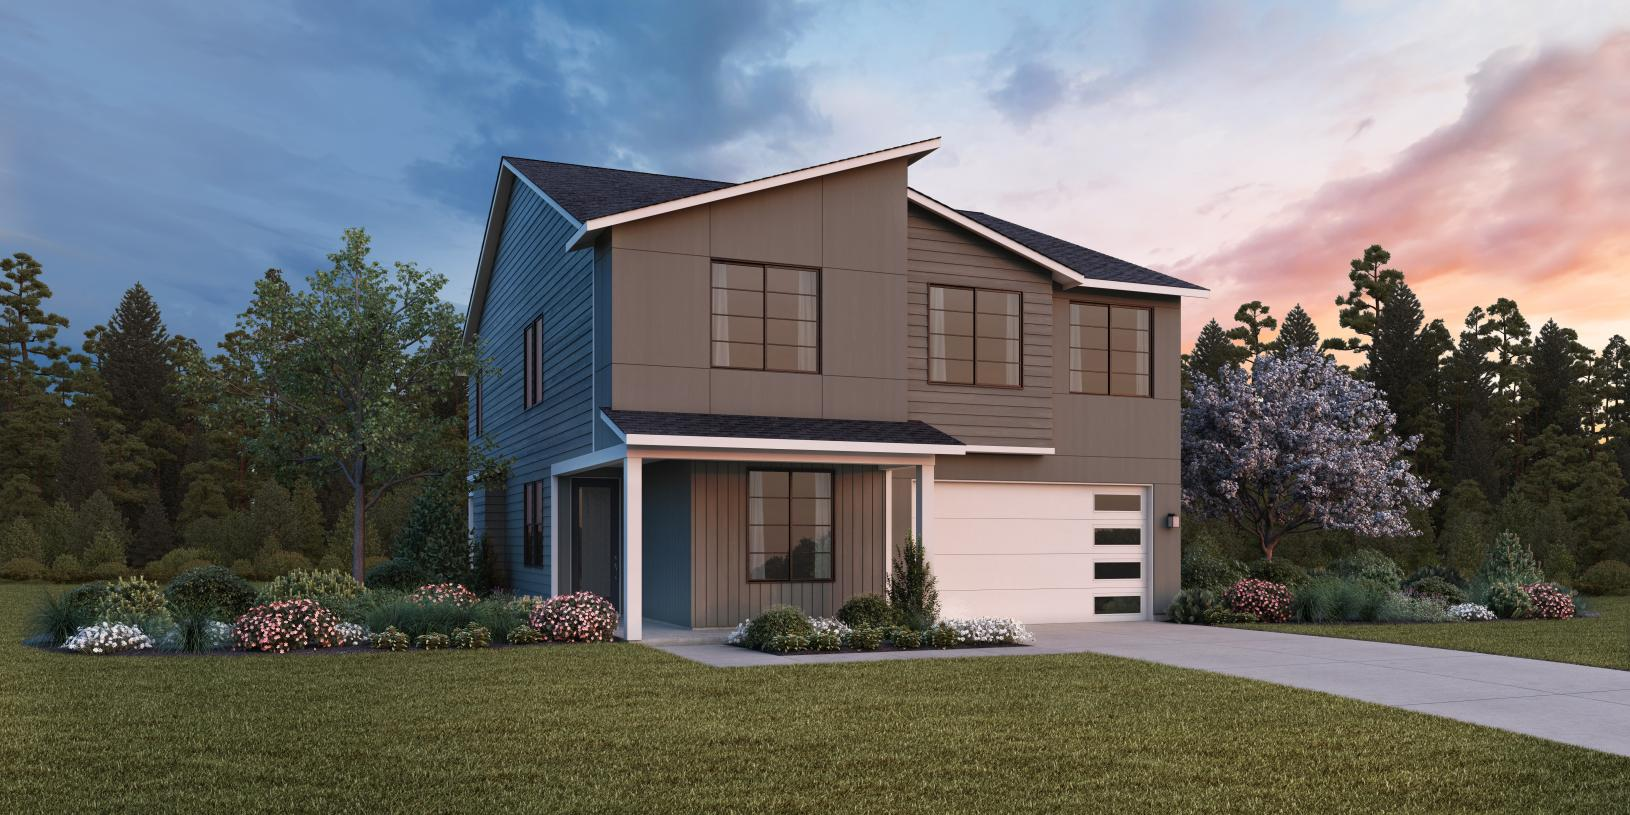 The Alki Contemporary exterior design will blend nicely with a variety of architectural styles